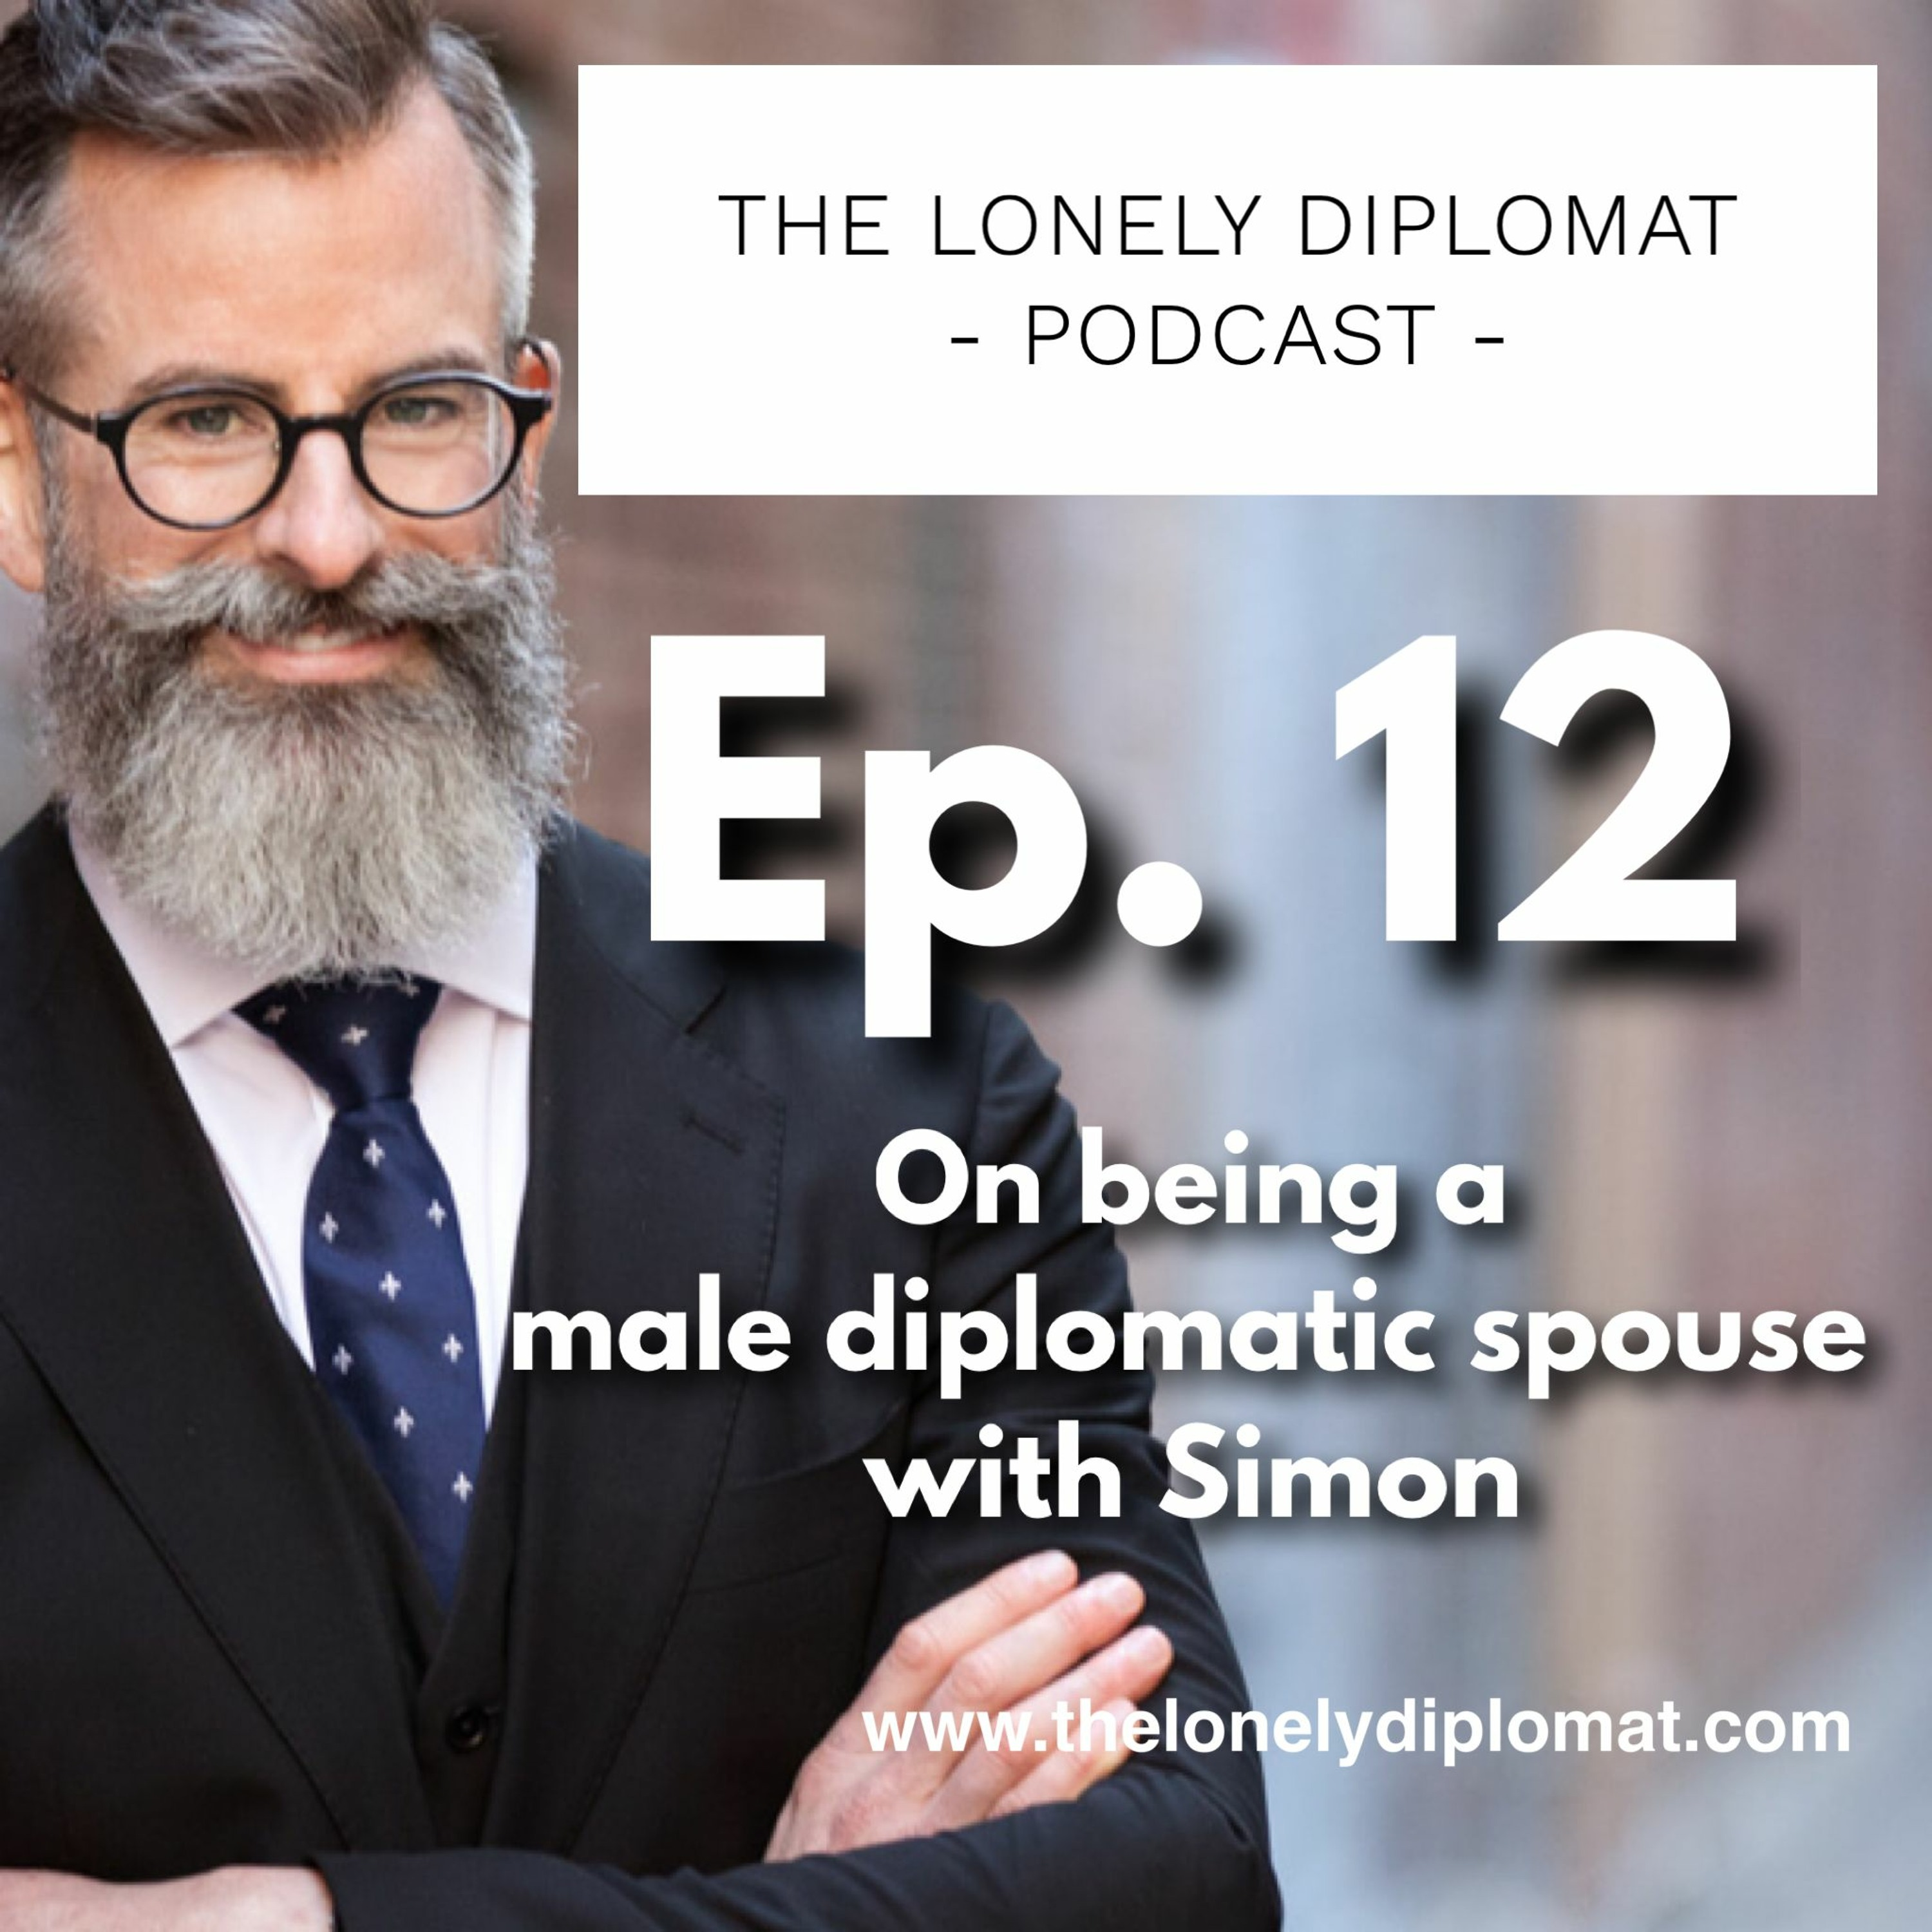 Ep. 12 - On being a male diplomatic spouse with Simon